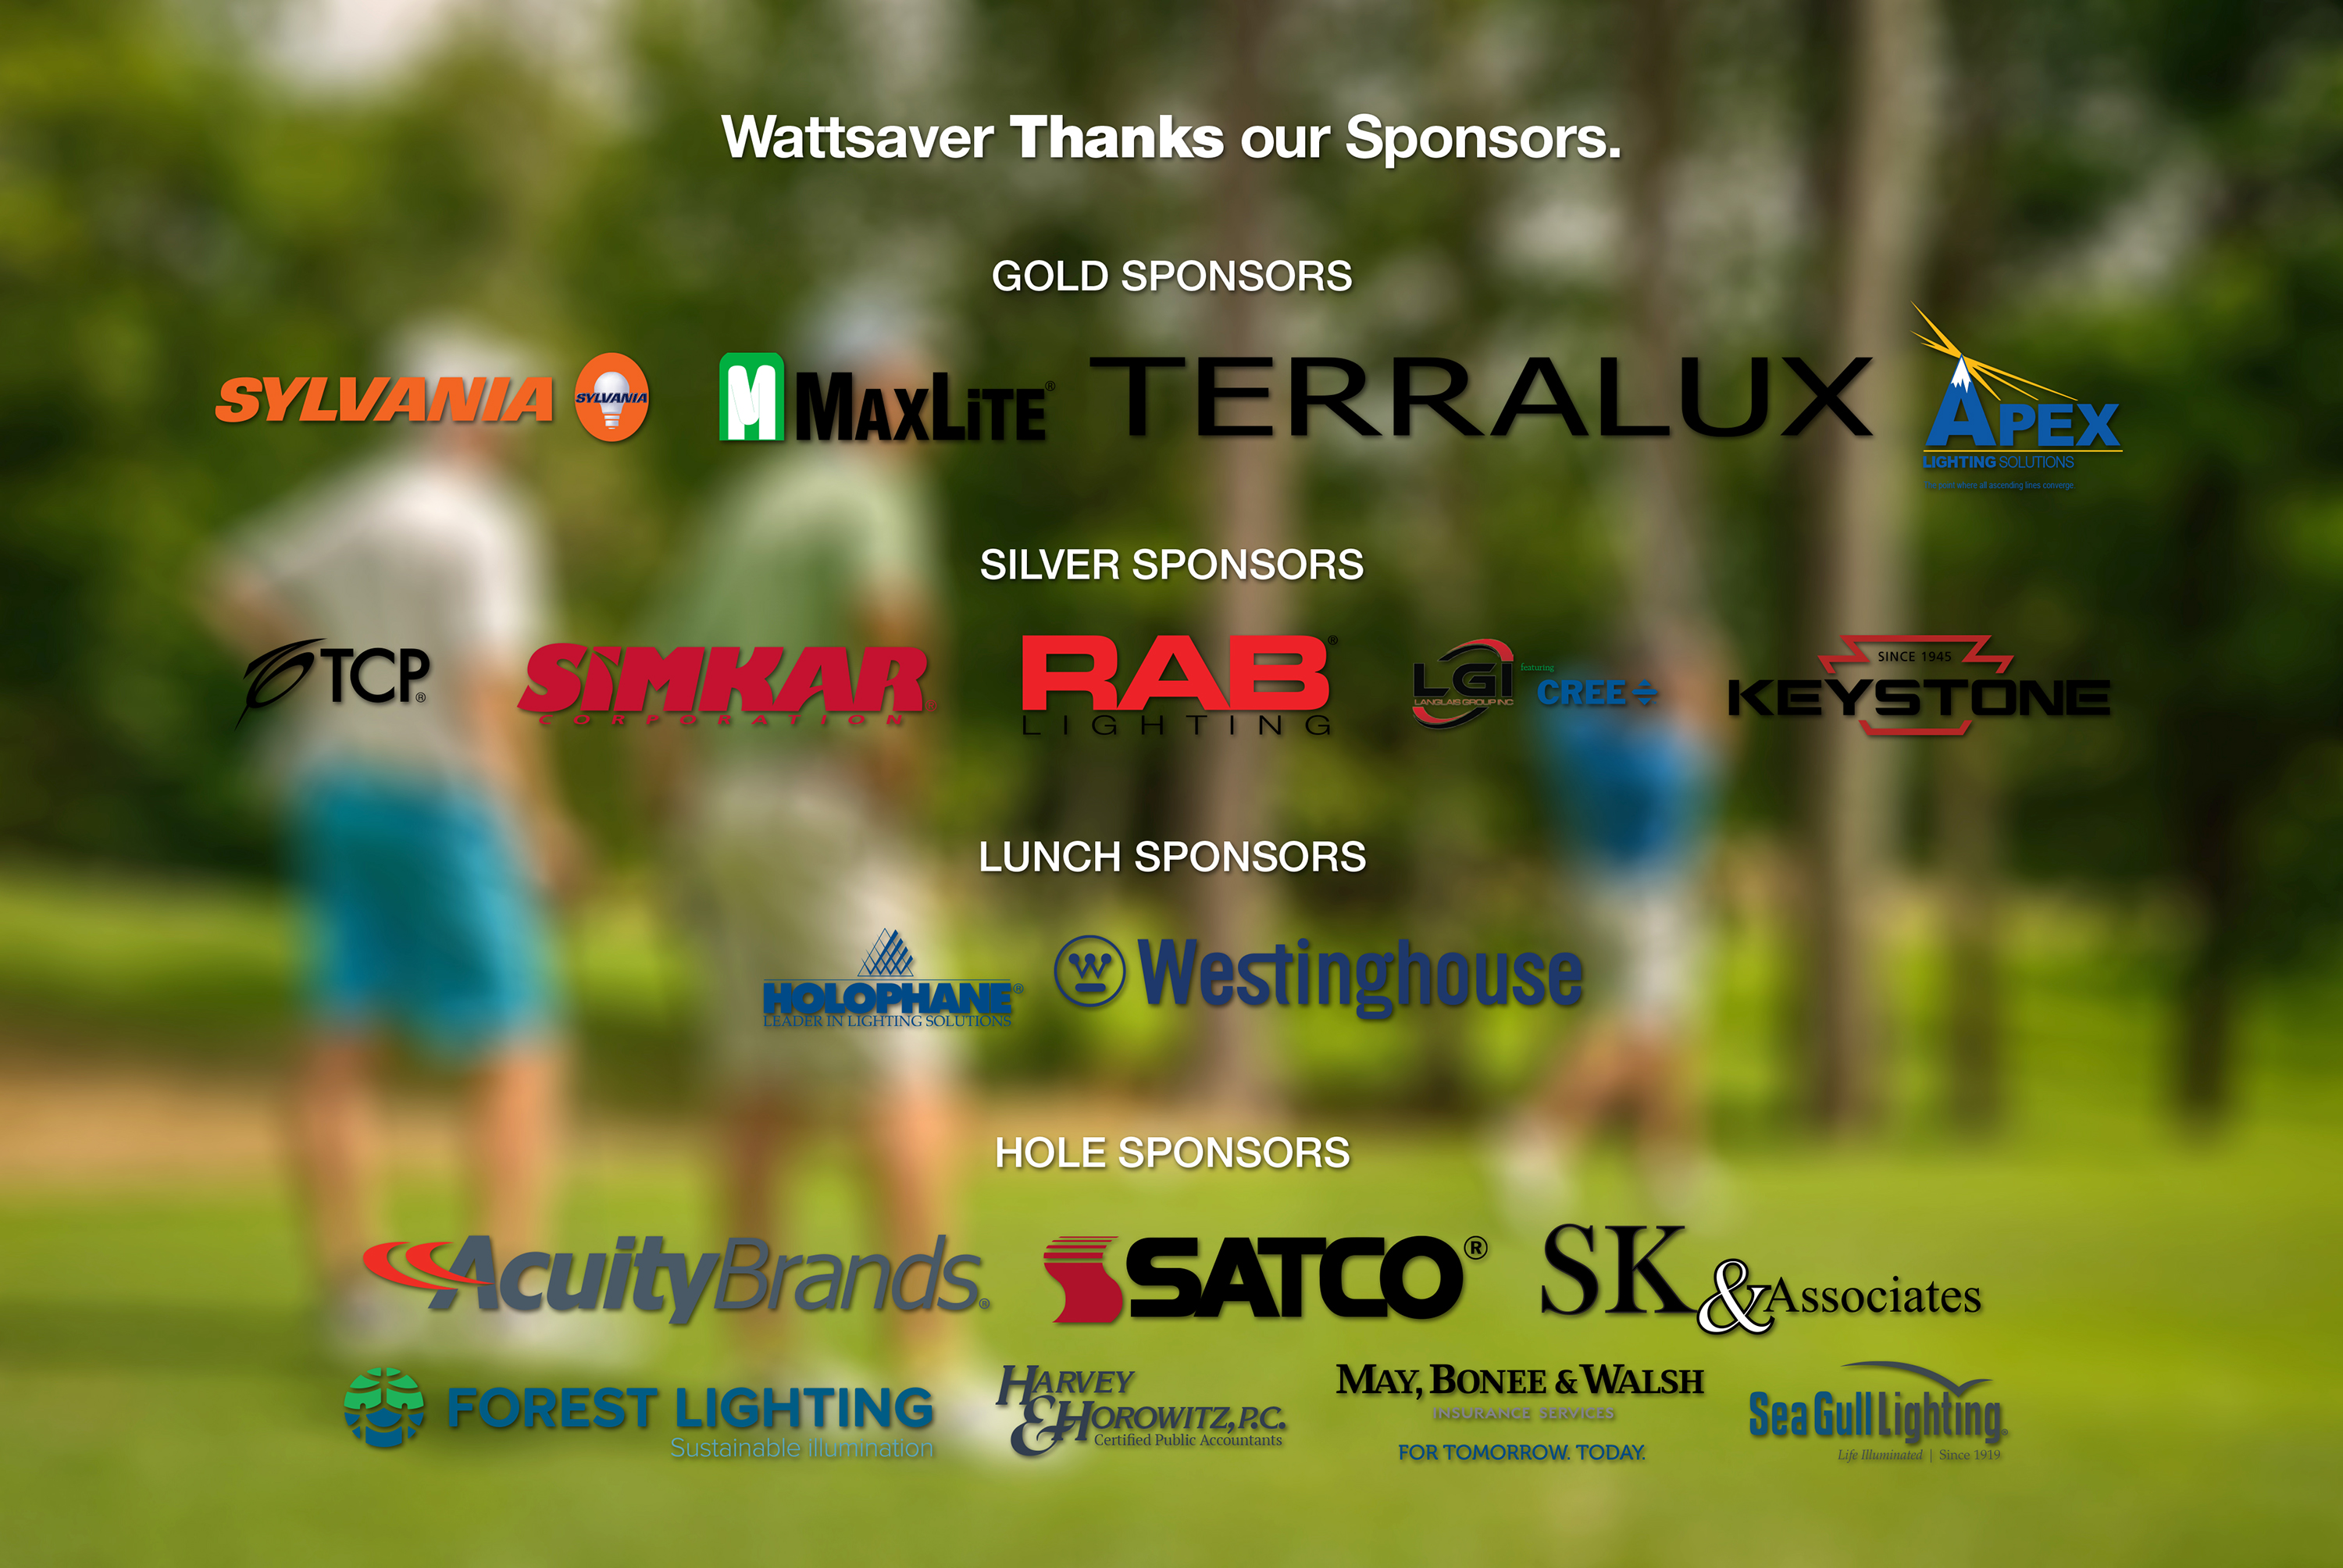 Wattsaver Thanks Our Sponsors.